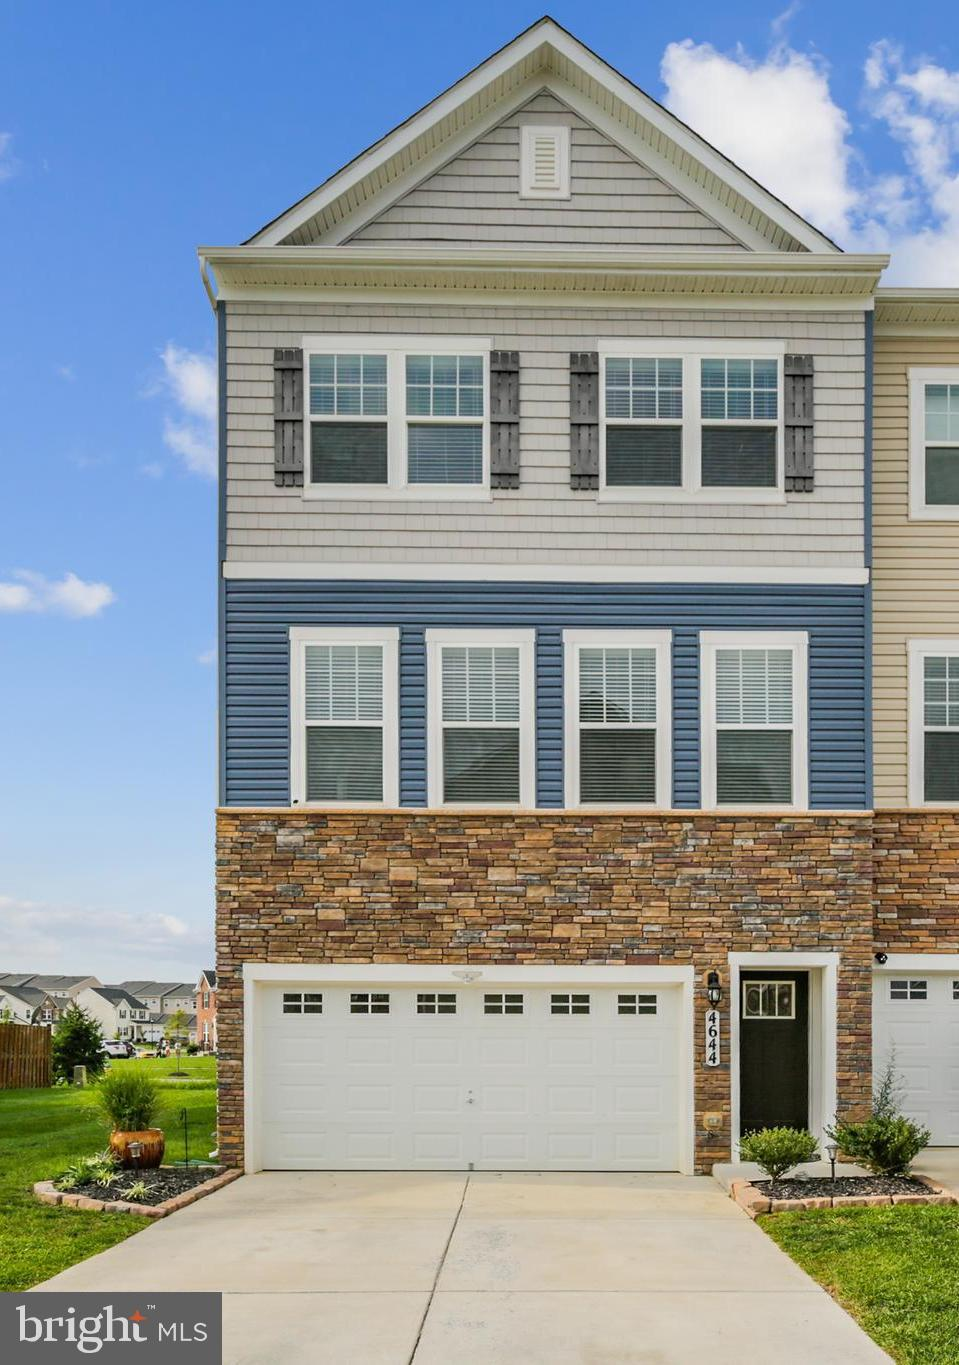 Excellent Buy!!! Move-in Ready!!! Come see for yourself and experience this like-new home. This End